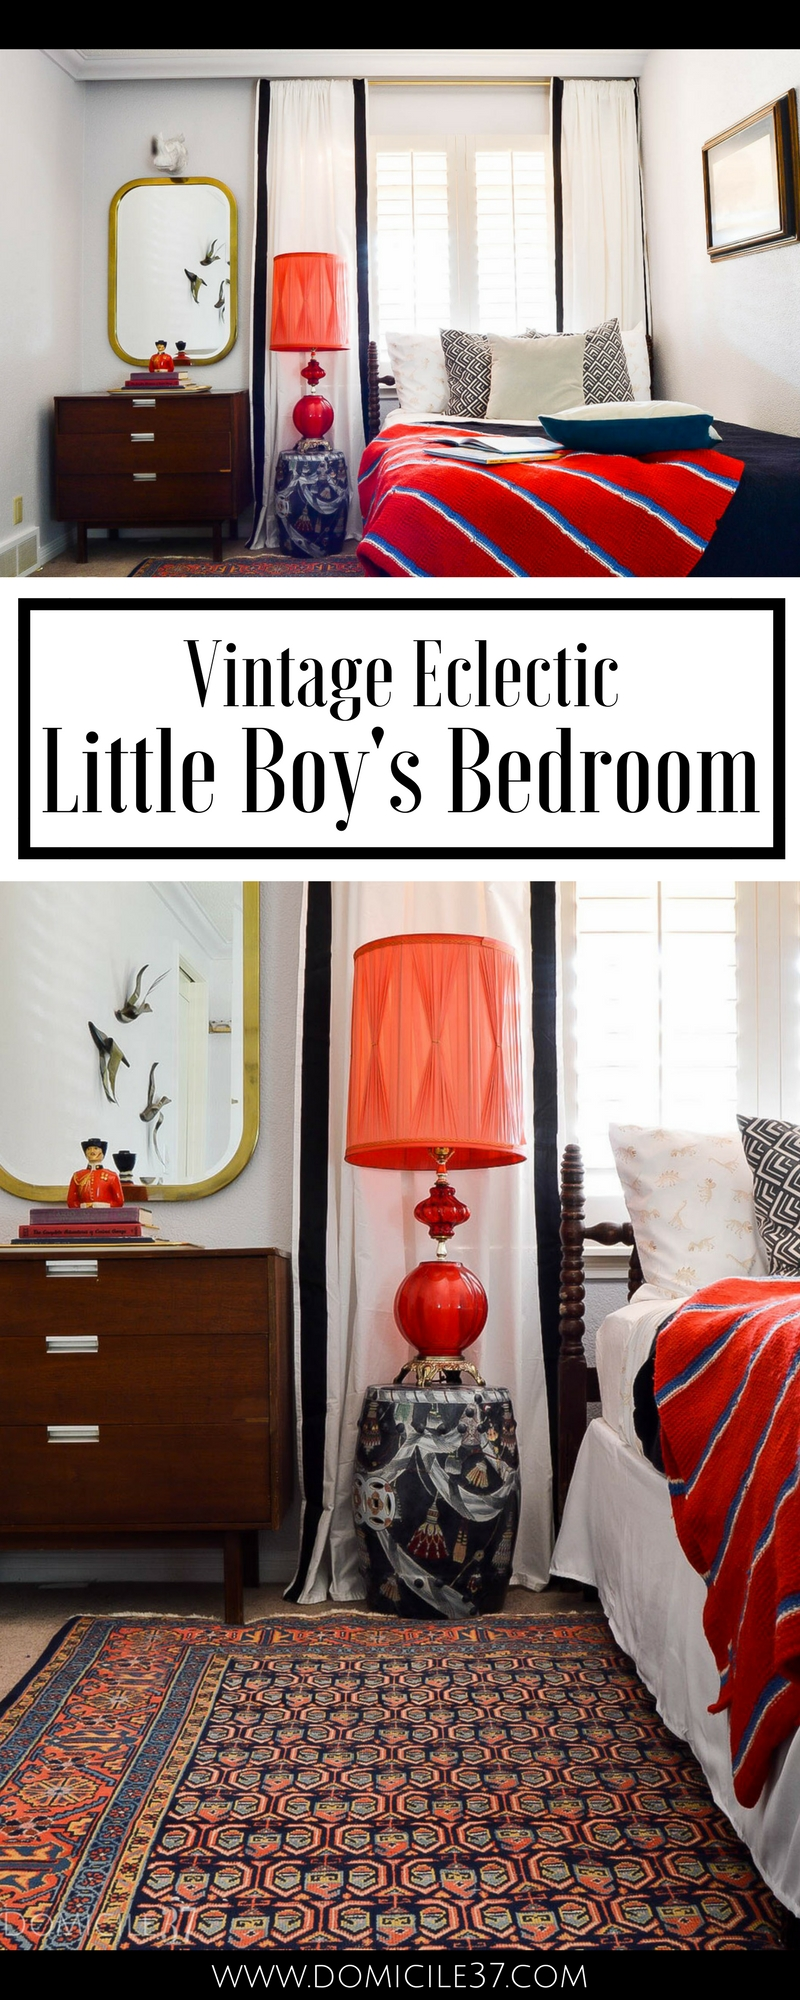 Vintage Eclectic little boy's room | Wes Anderson inspired bedroom | colorful boy's room | collected bedroom | eclectic bedroom ideas | vintage bedroom ideas | colorful bedroom ideas | gallery wall ideas | How to display vintage items on gallery wall | taxidermy in bedrooms